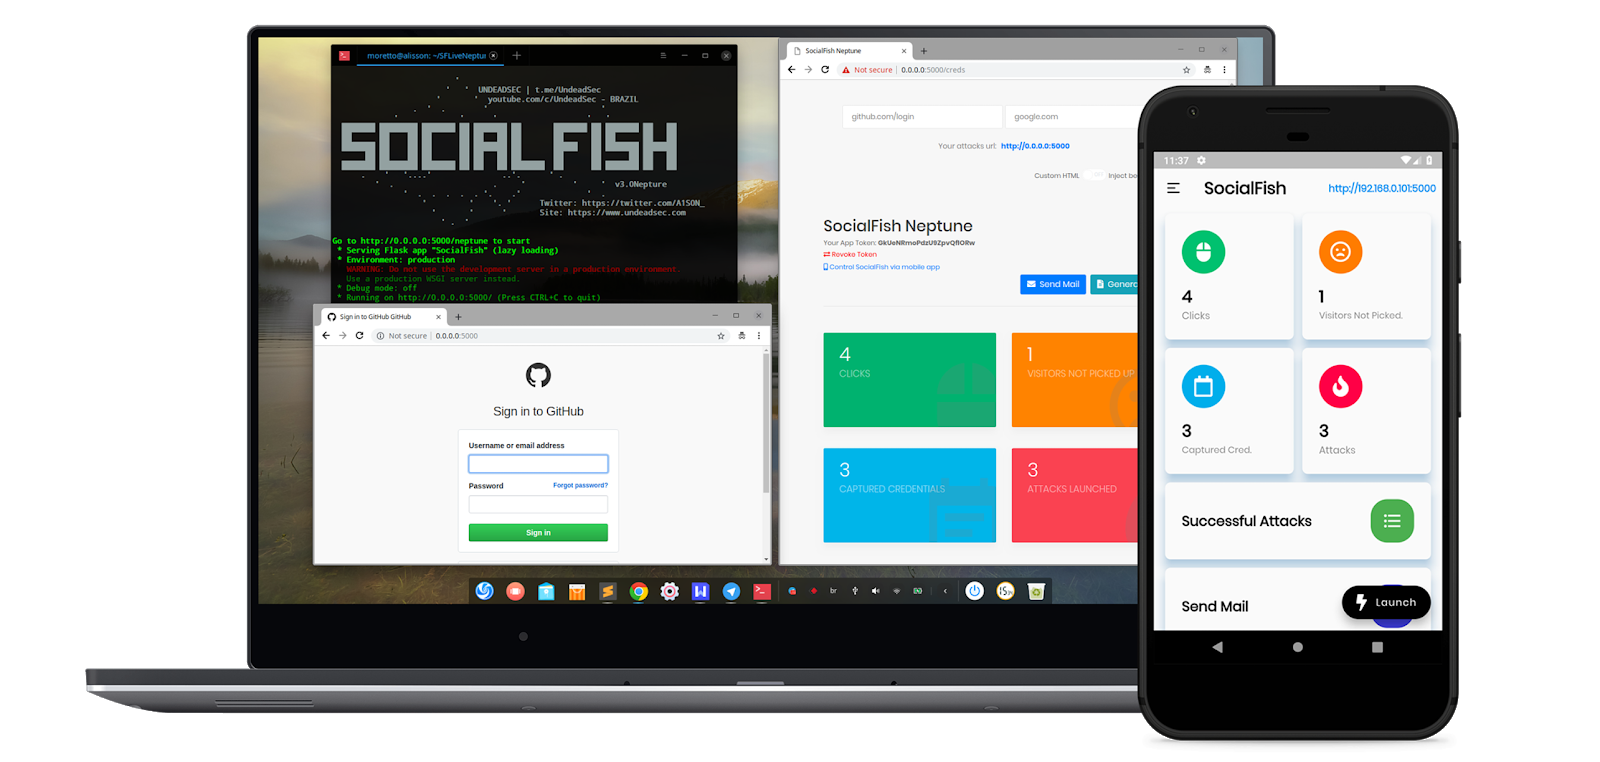 SocialFish v2 - Educational Phishing Tool & Information Collector